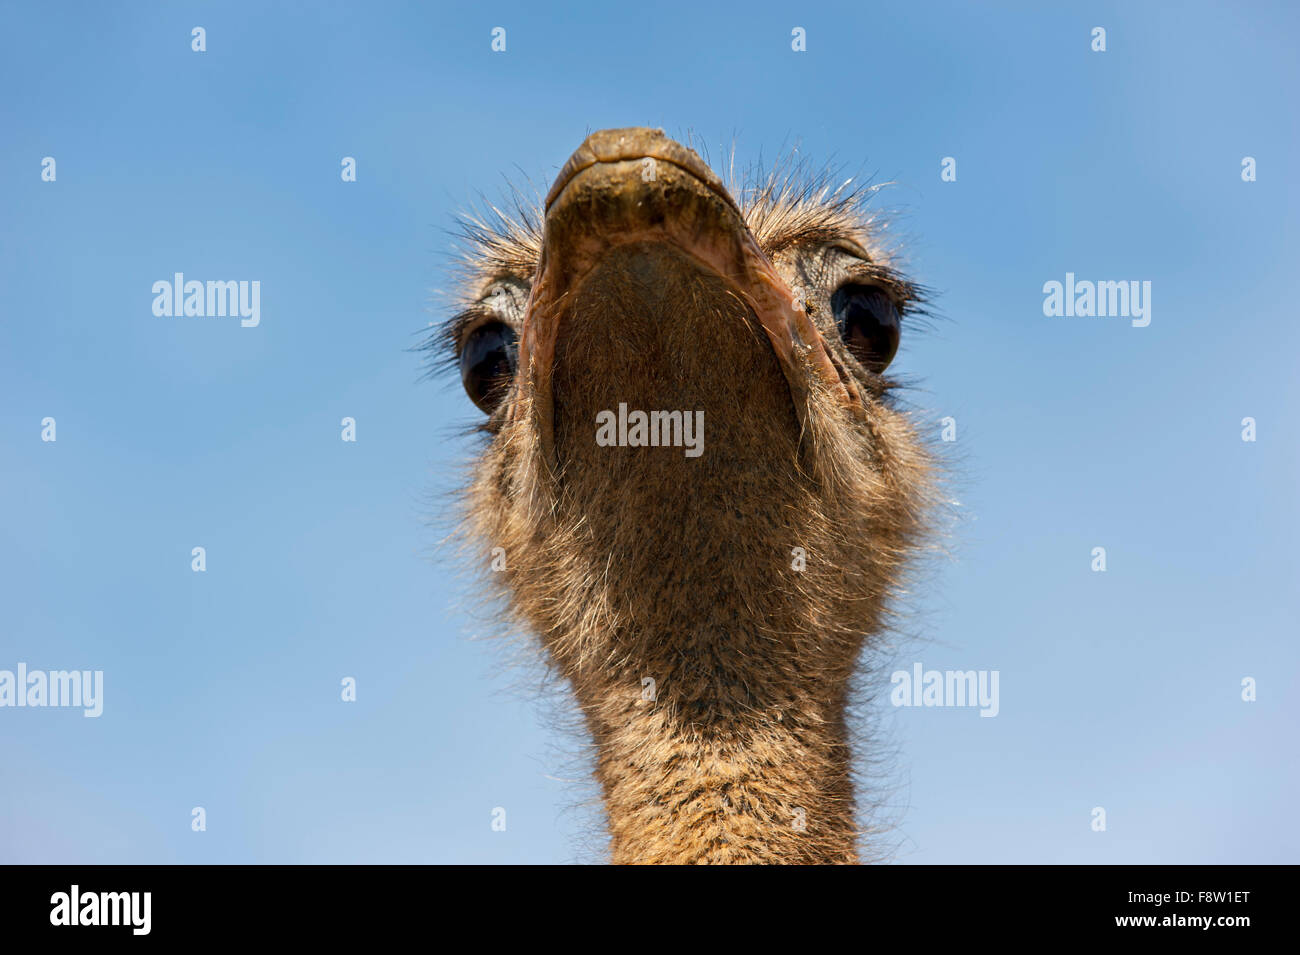 Common ostrich (Struthio camelus) close up of head against blue sky - Stock Image